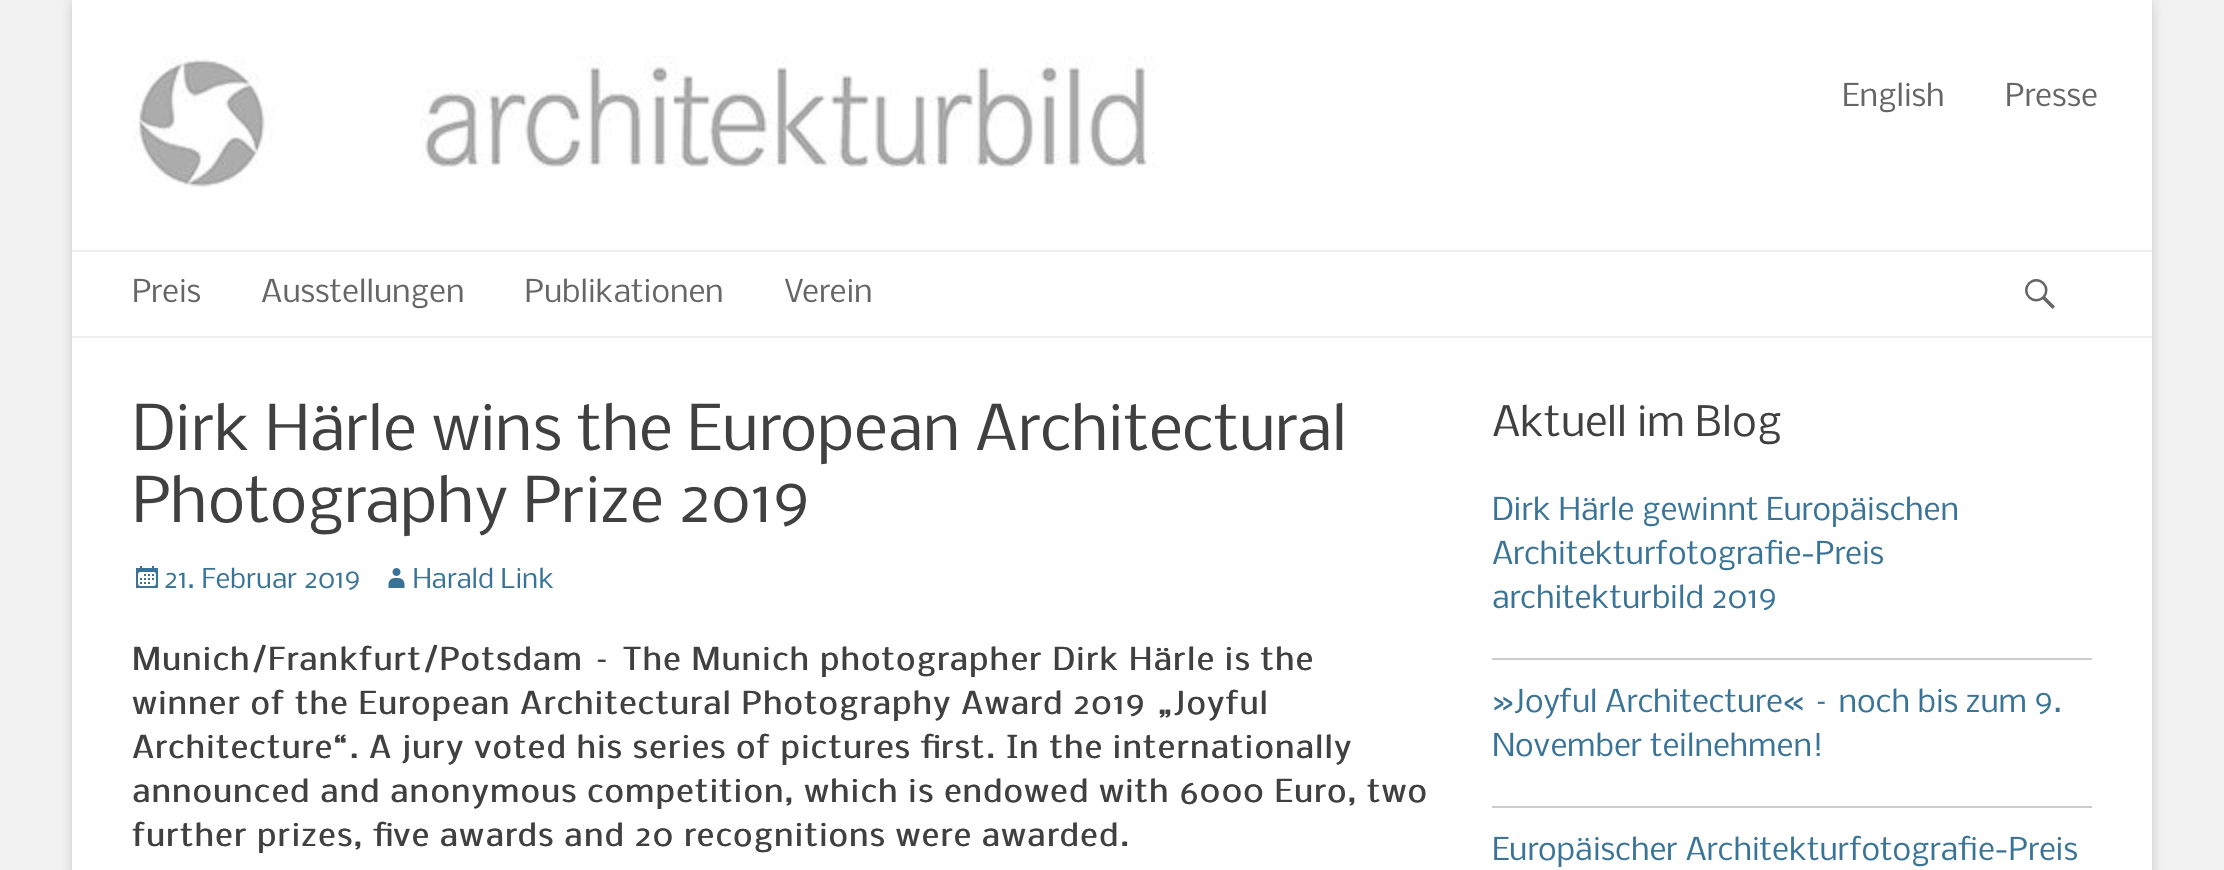 architekturmild e.v. is announcing the winners of the European Architectural Photography Prize 2019